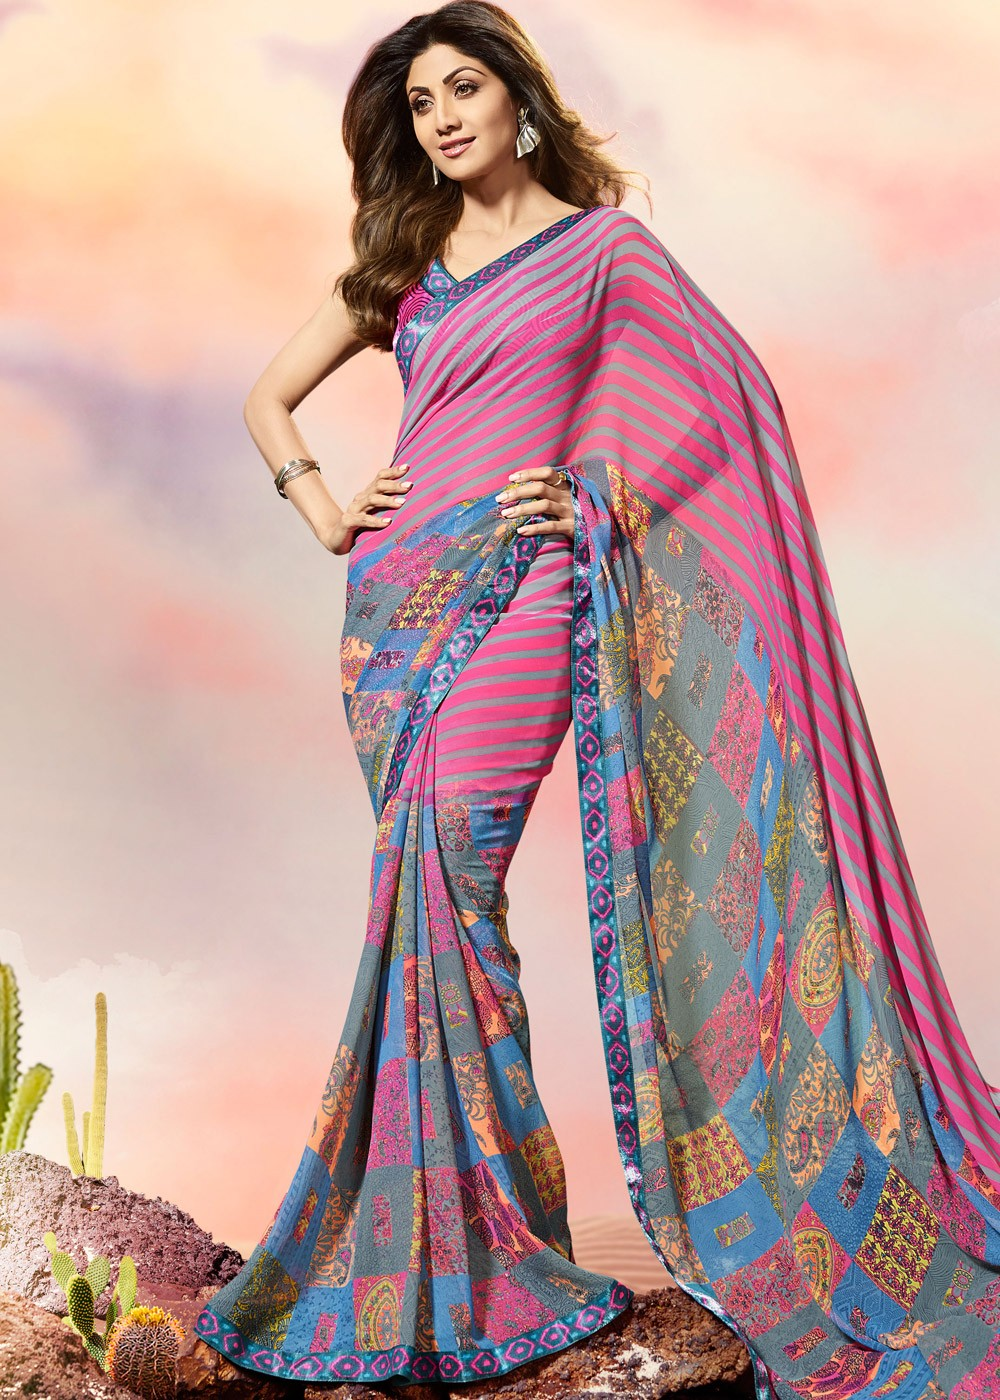 72c6725f71 Shilpa Shetty Multicolor Printed Georgette Saree with Blouse. Tap to expand